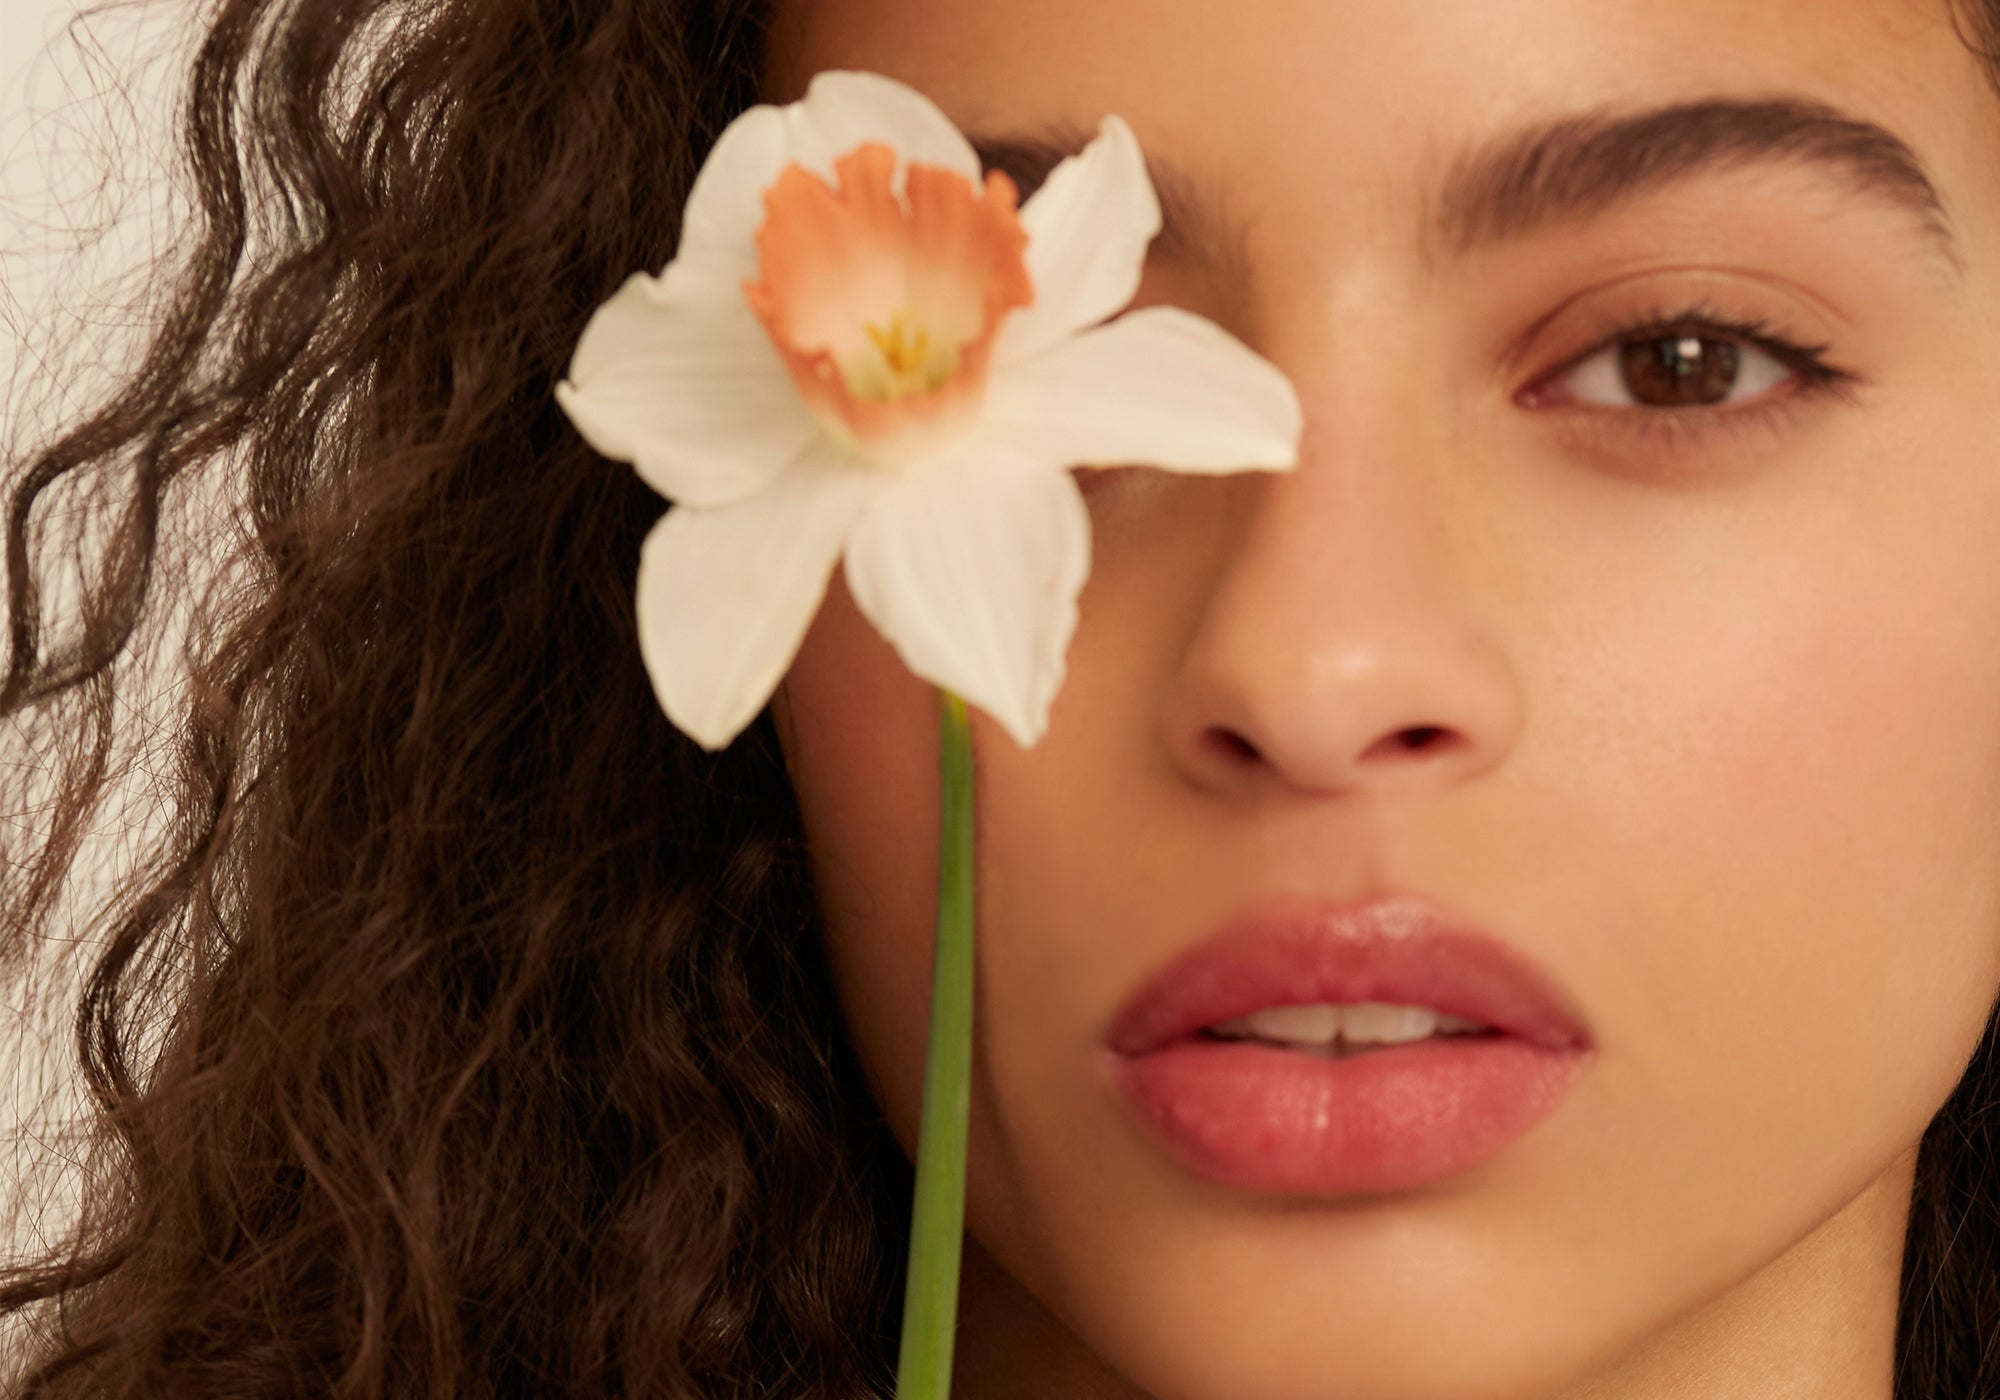 Inside Blossom: Why Our Love for Flowers is Always Blooming